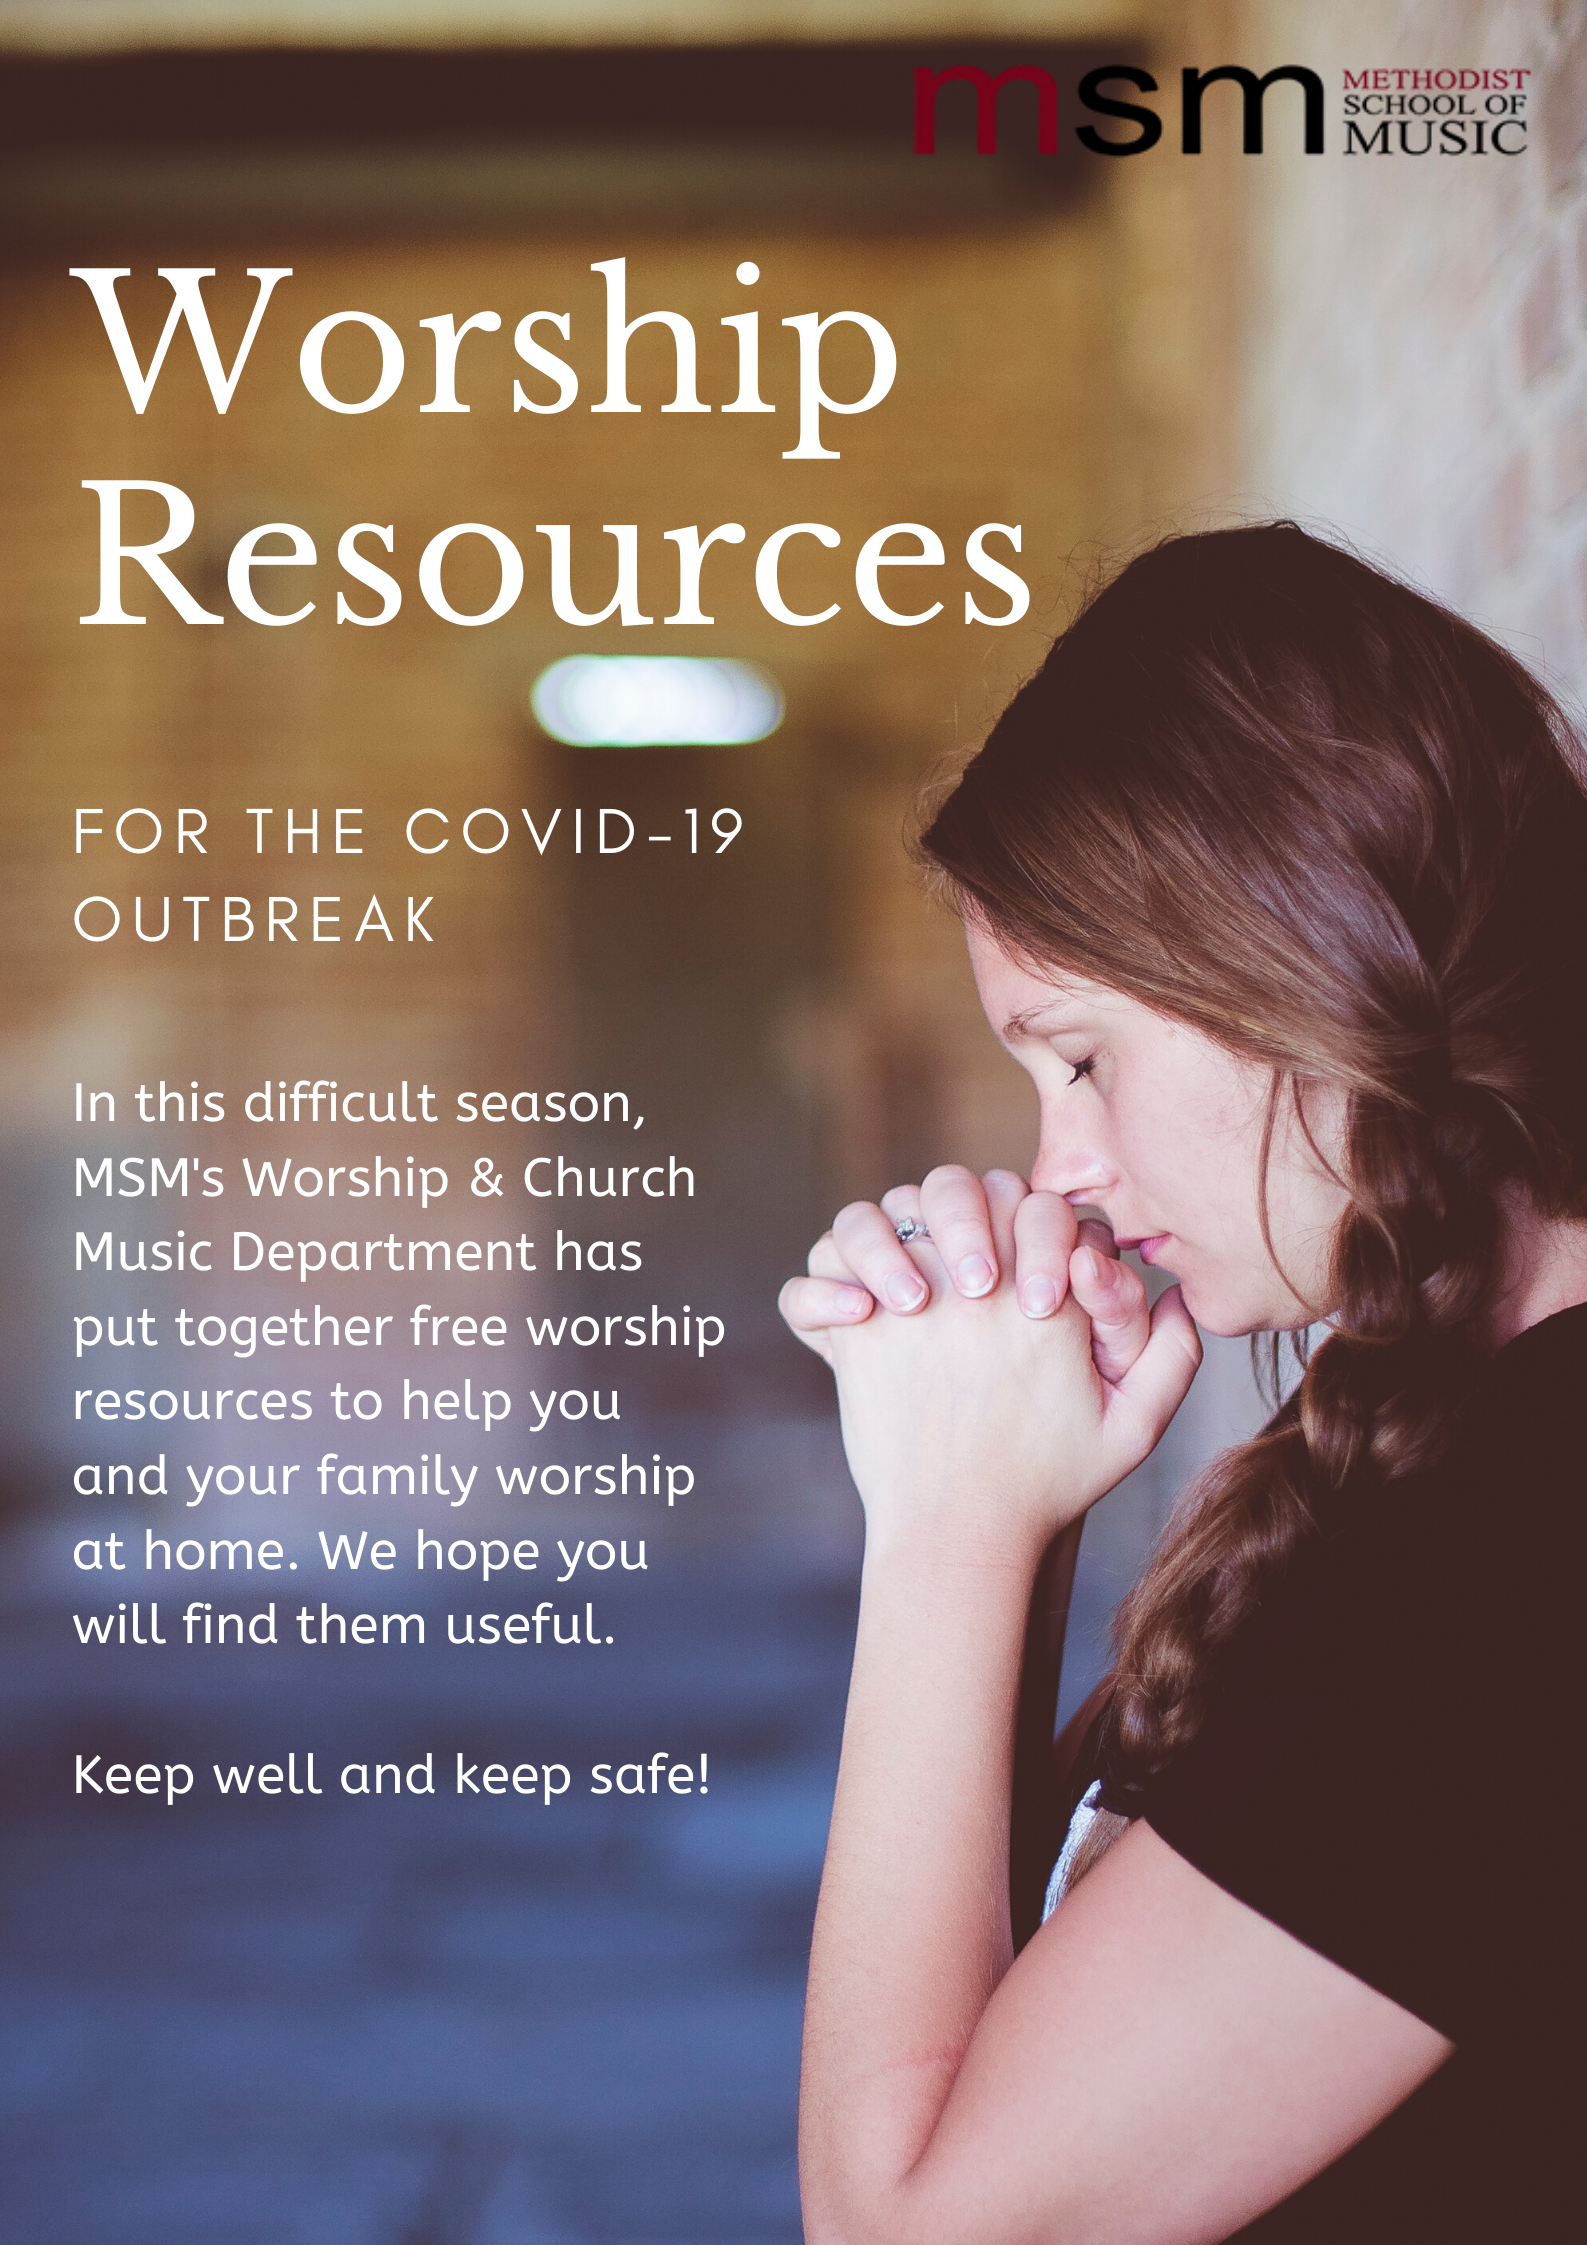 WORSHIP RESOURCES FOR THE COVID-19 OUTBREAK